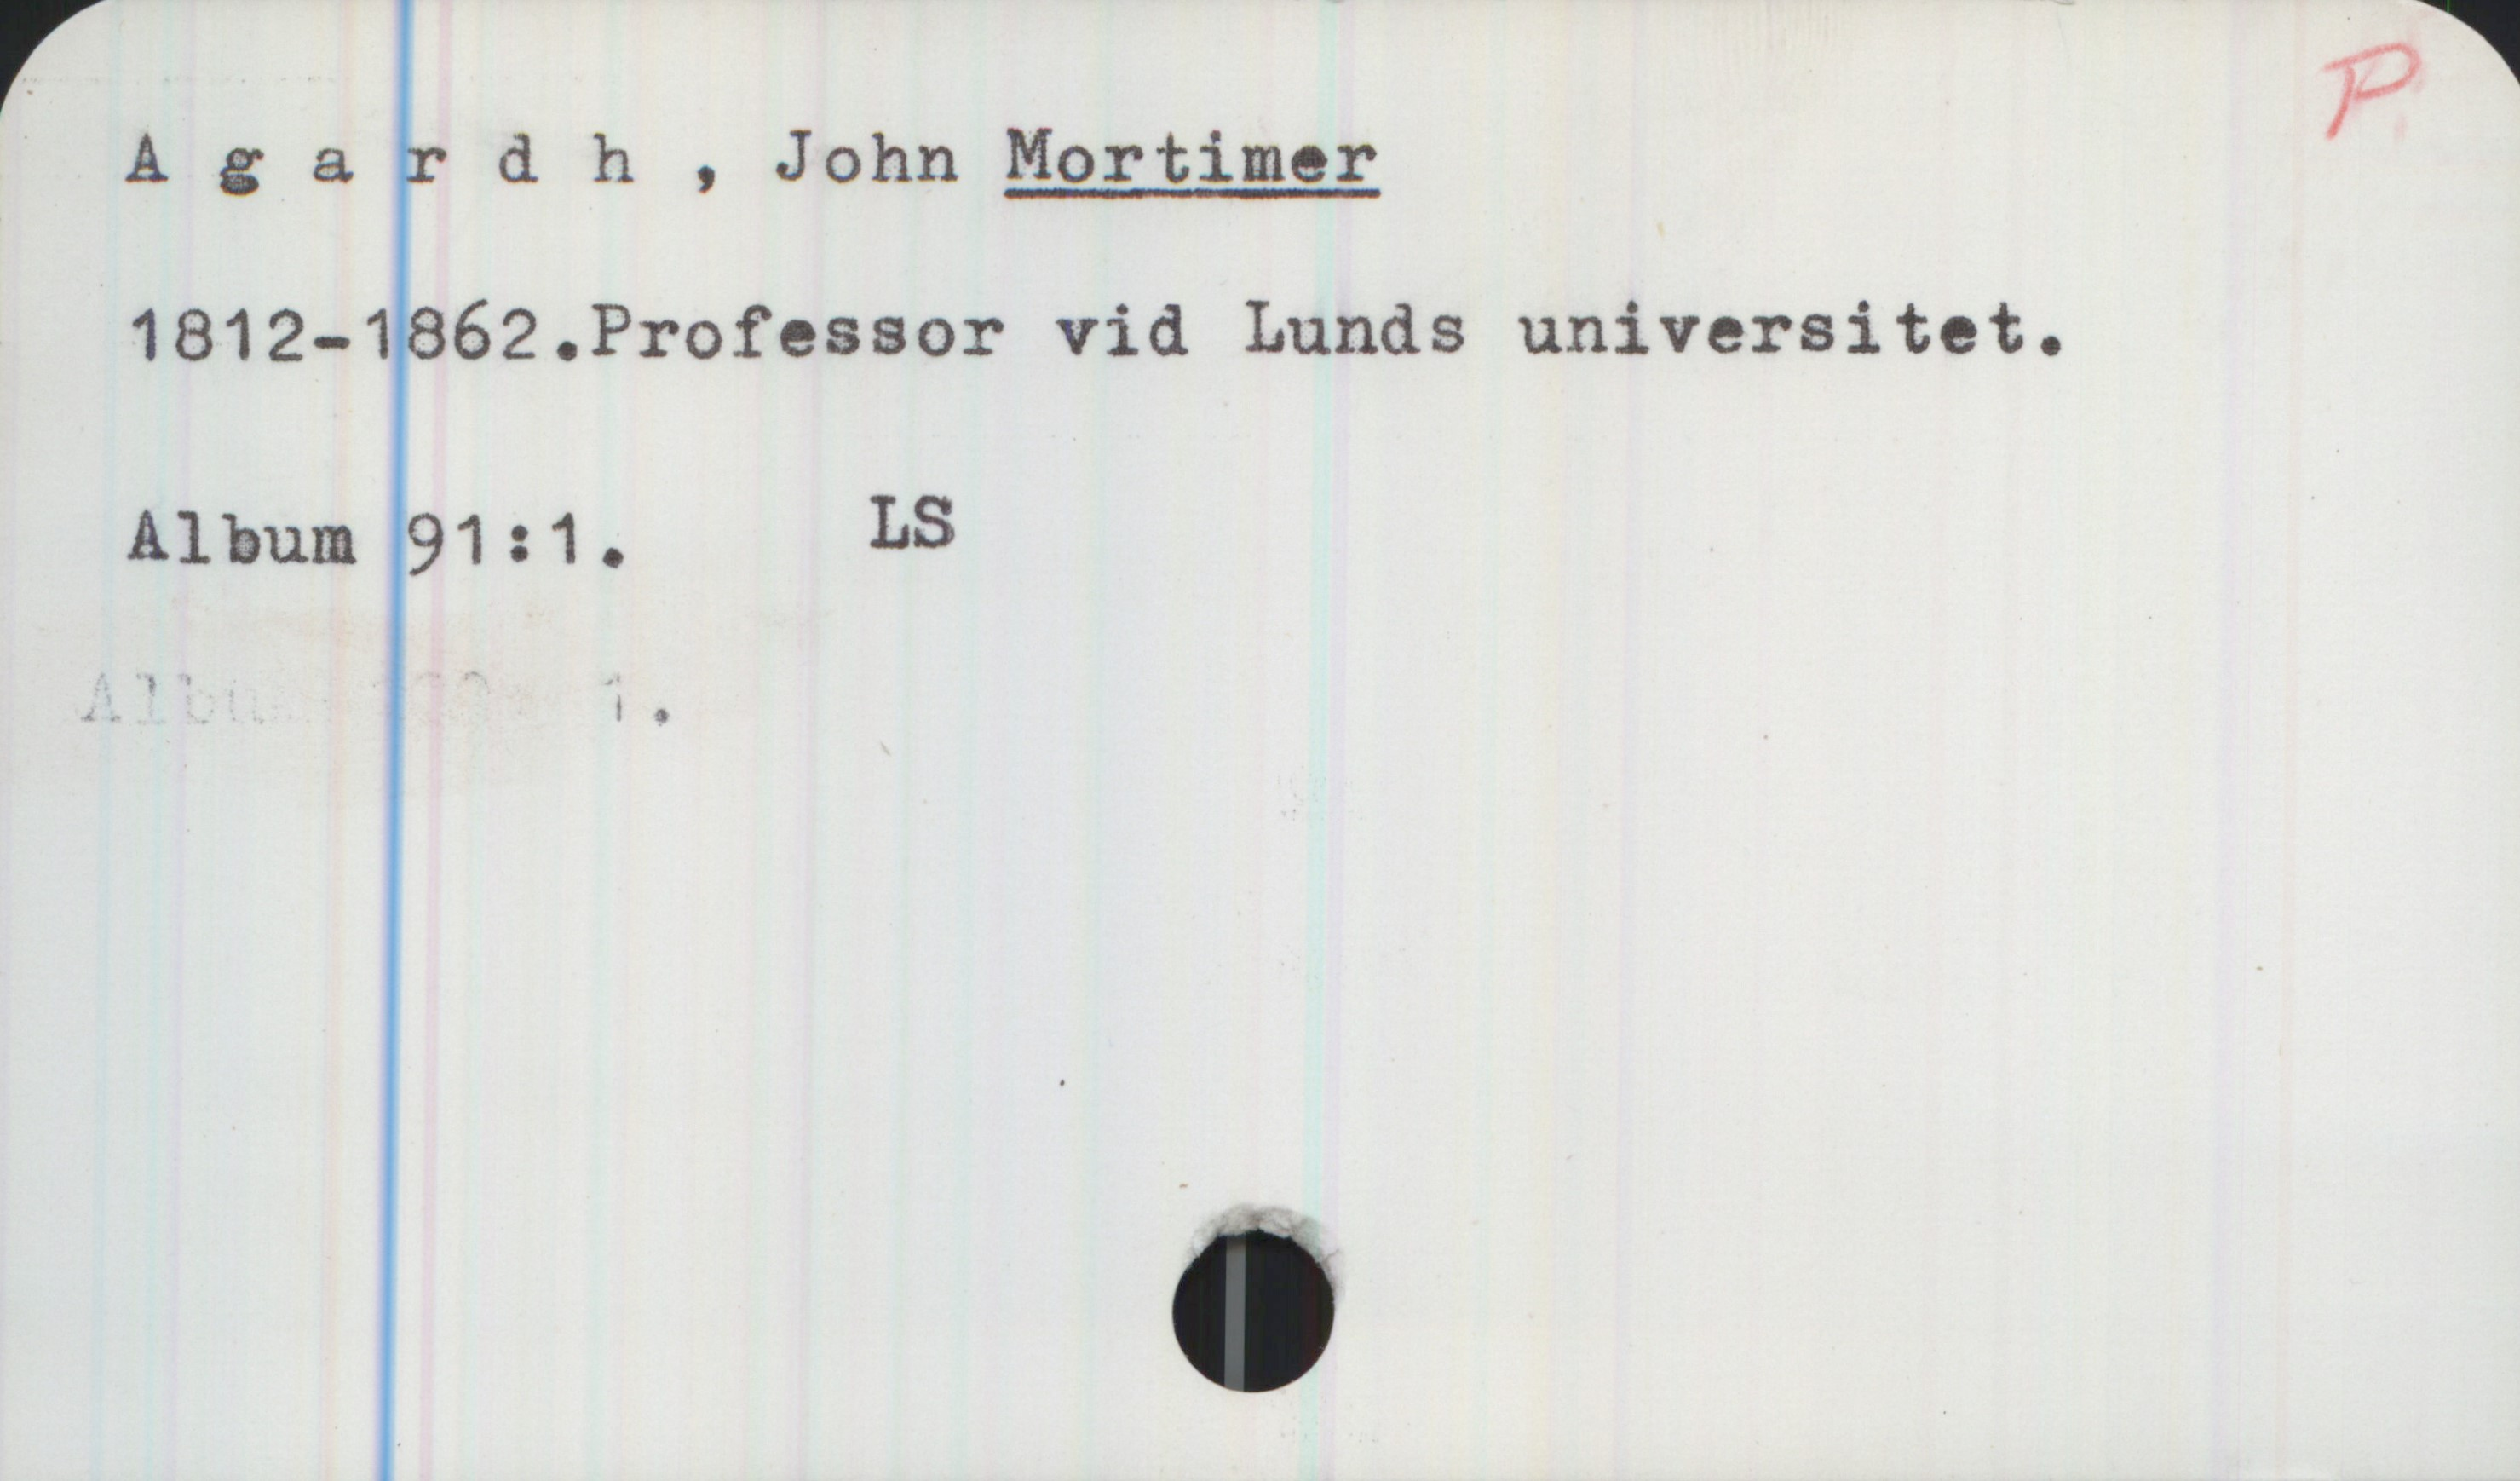 """? fi*— Agardh , John Mortimer 1812-1862.Professor vid Lunds universitet. Album 91z1. LS"